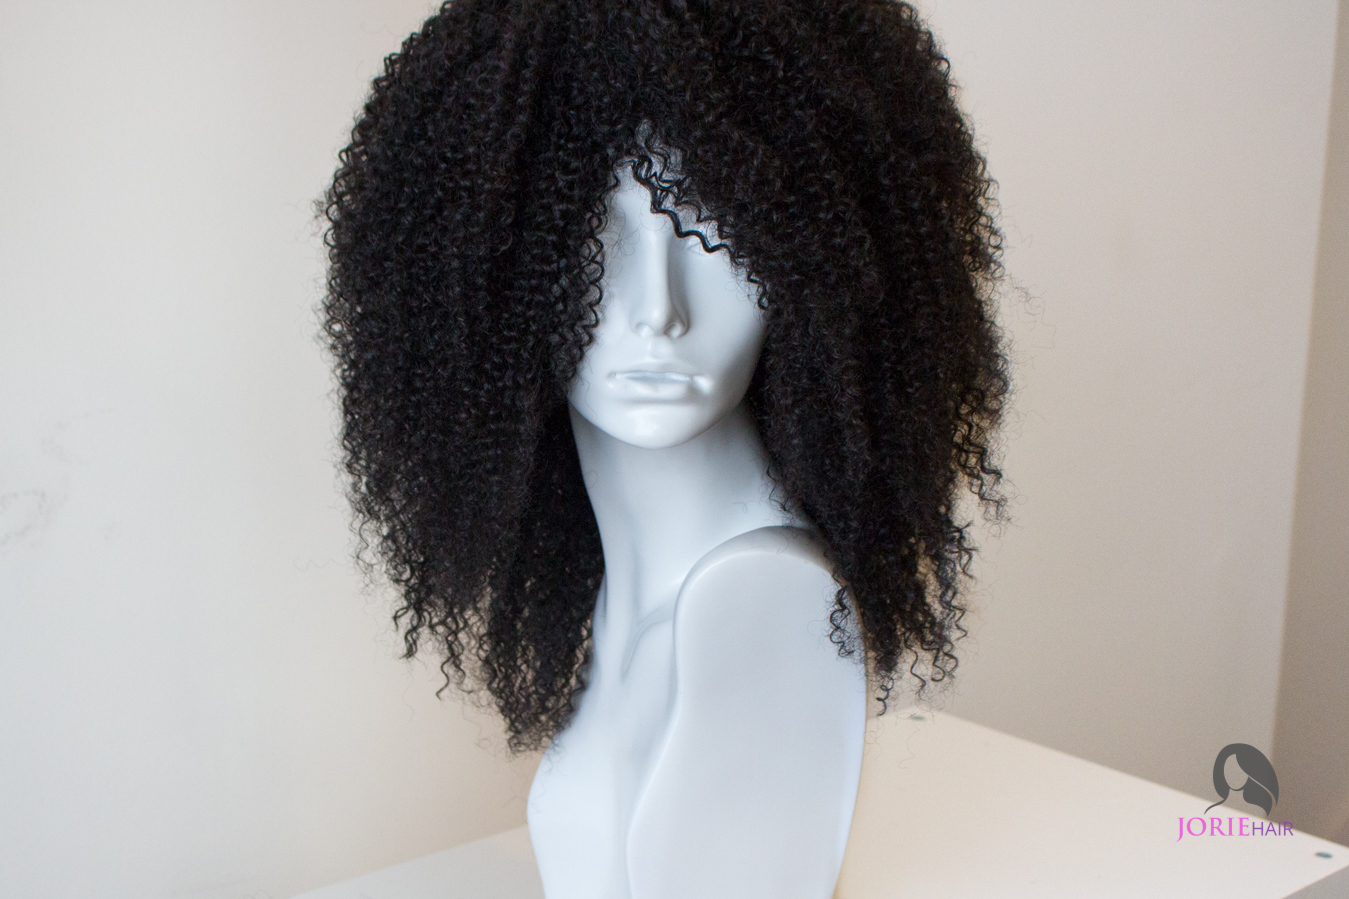 Weave How To Wear Our Kinky Curly Hair Jorie Hair